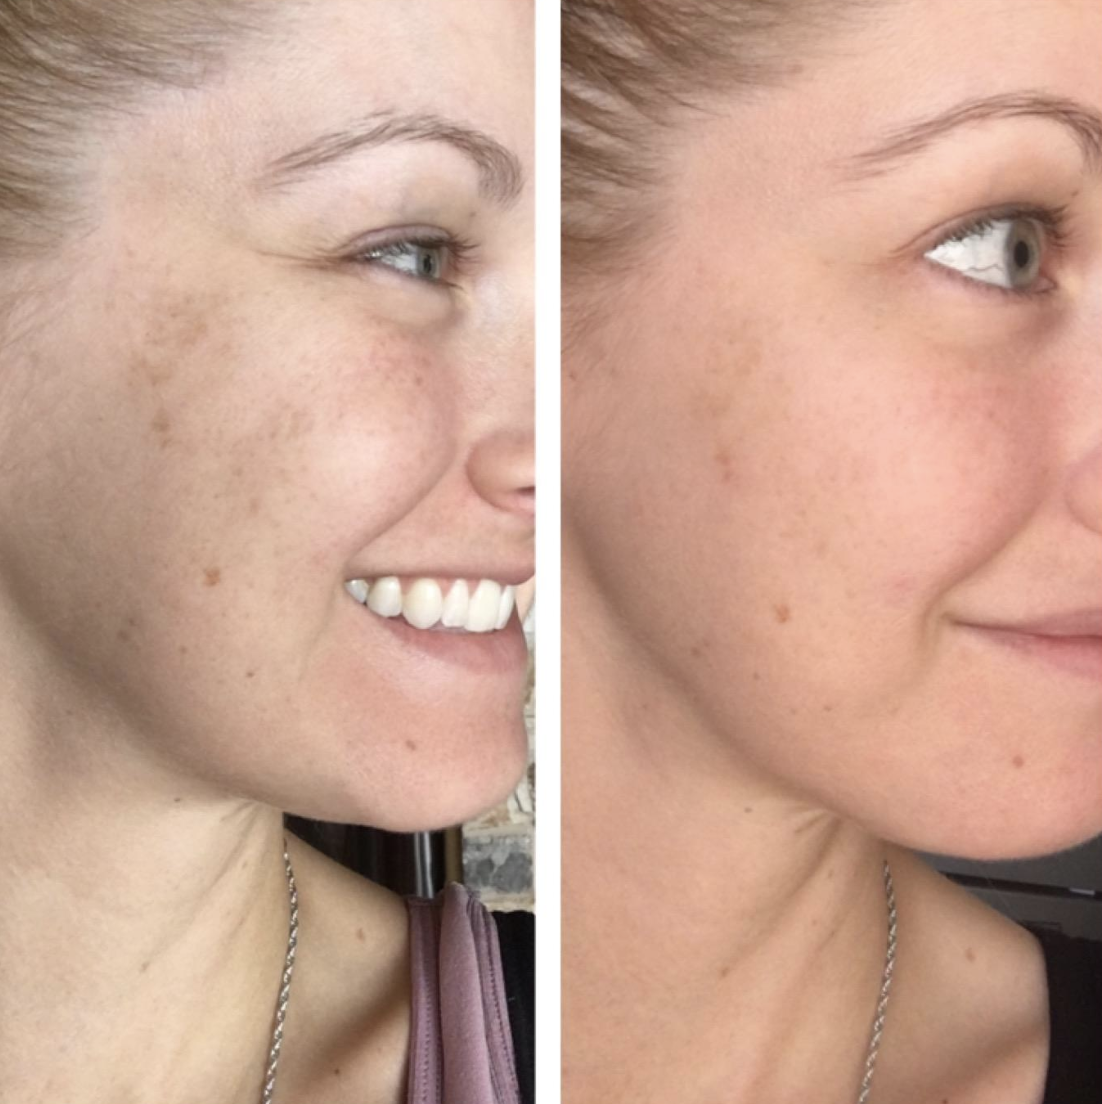 Before and after image of reviewer with more refreshed skin after use